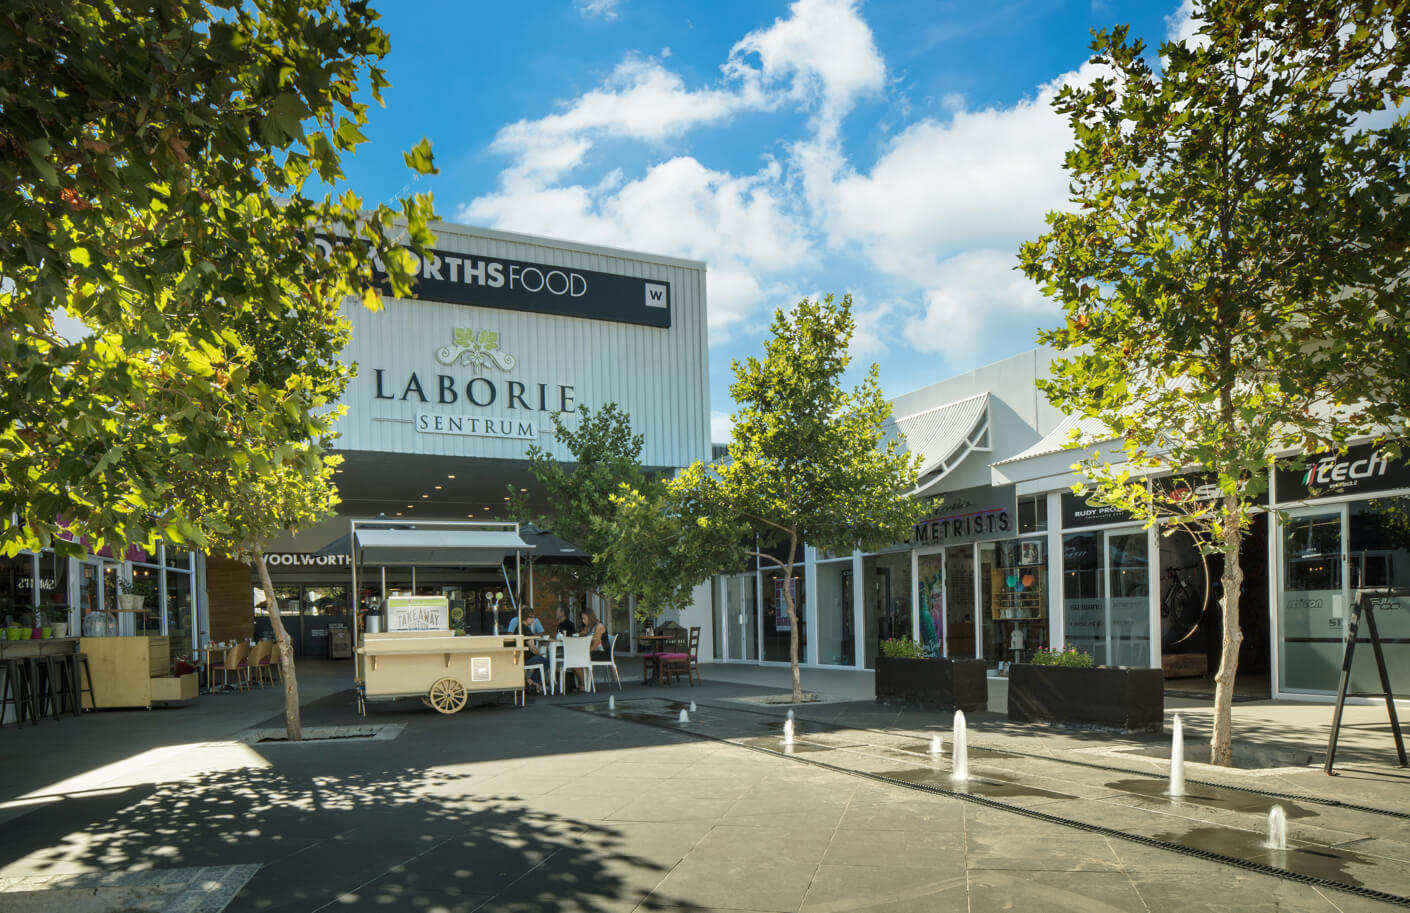 Woolworths Food entrance at Laborie Centre in Paarl